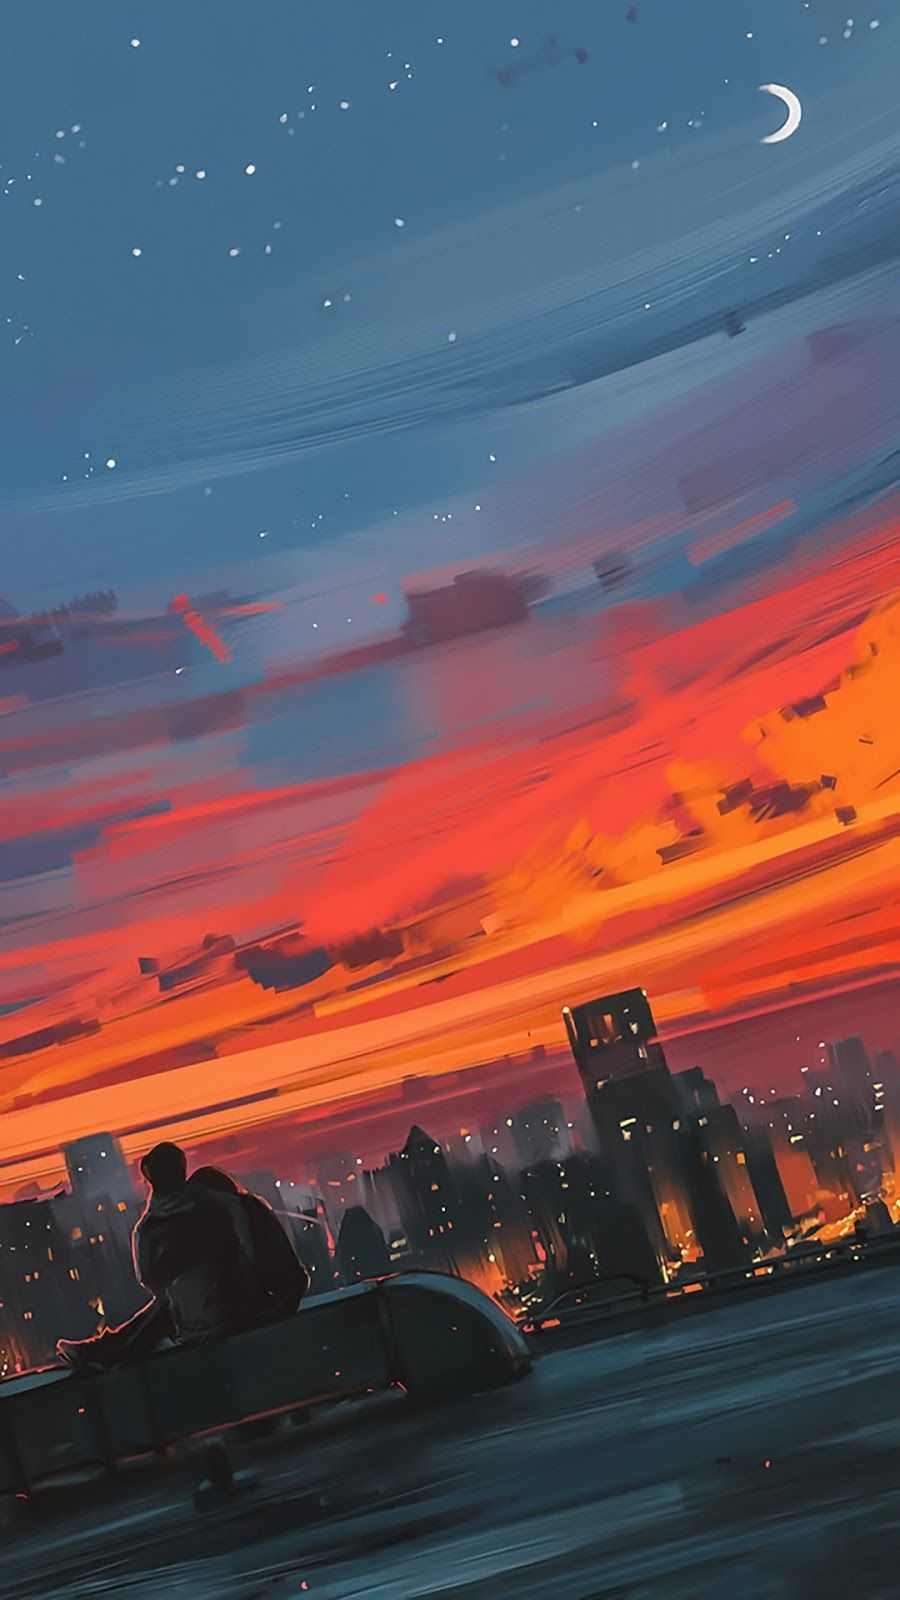 36+ Amazing Artistic Wallpapers Android พื้นหลัง, การ